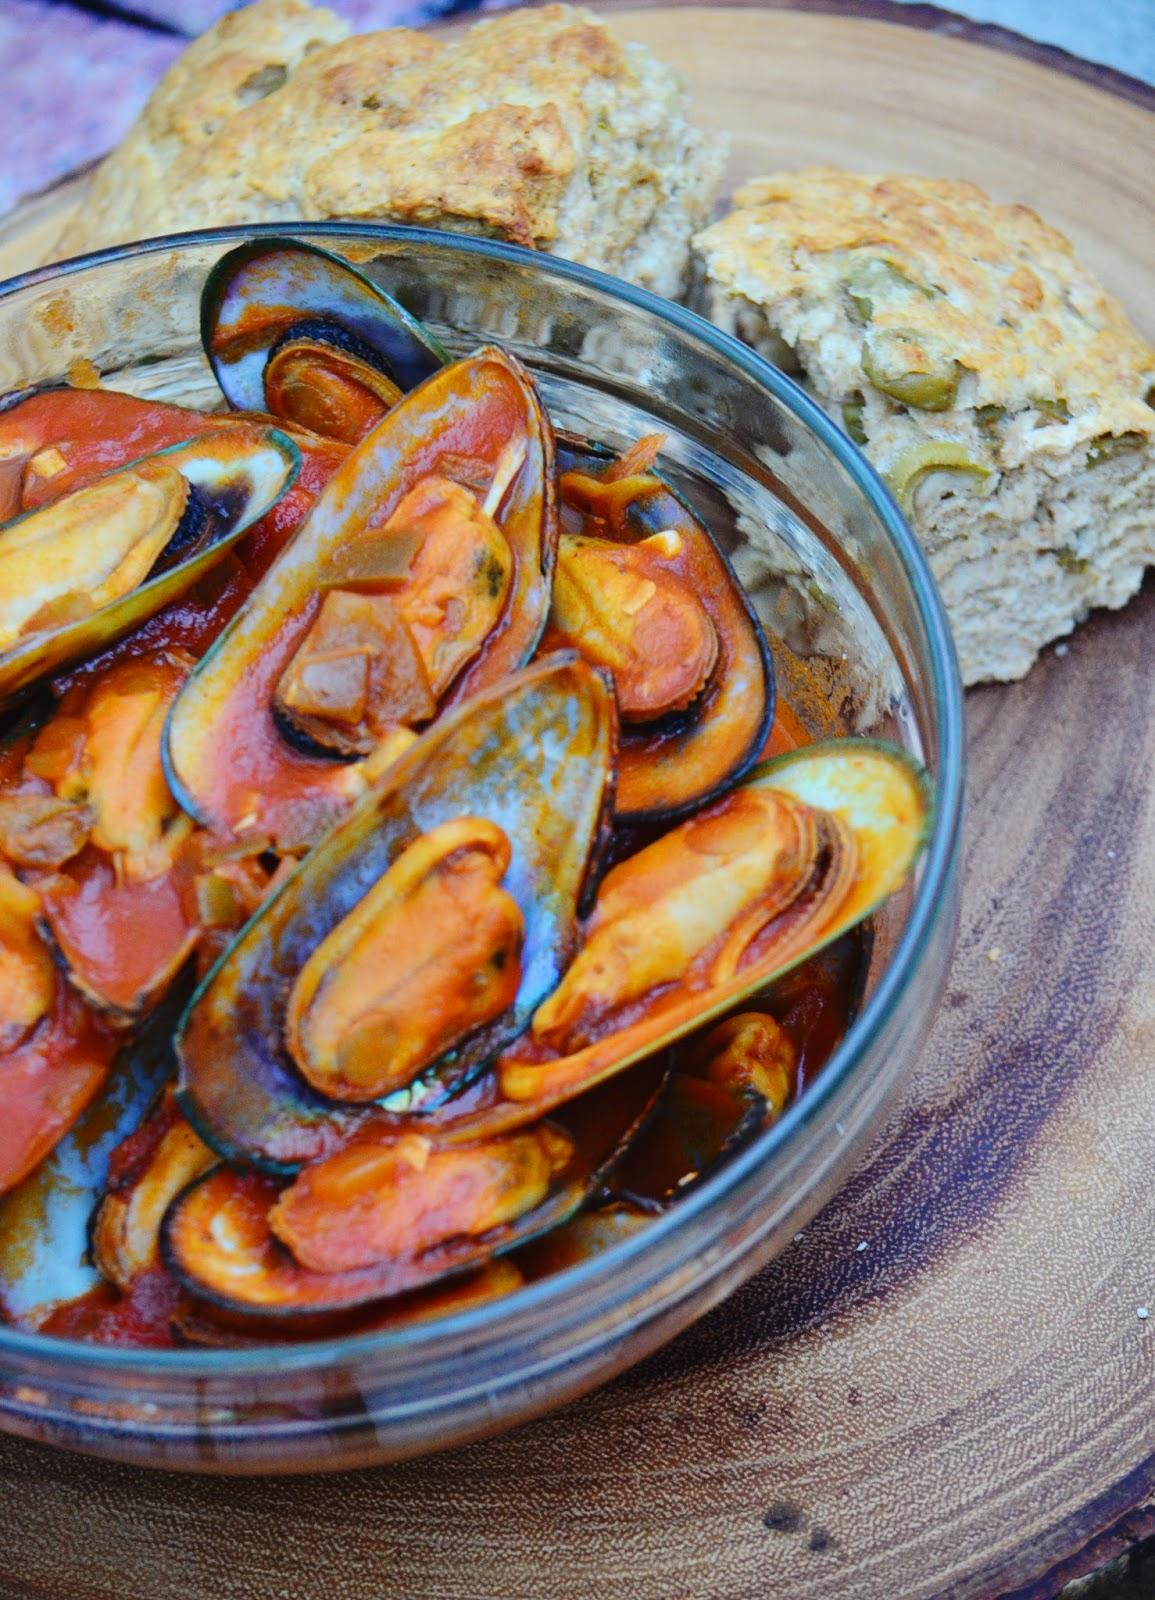 Food, Seafood, Mussels, Cook, Cooking, cooking fun, fast cooking, tomato sauce, eating healthy, healthy eating, tomato basil, tomato basil mussels